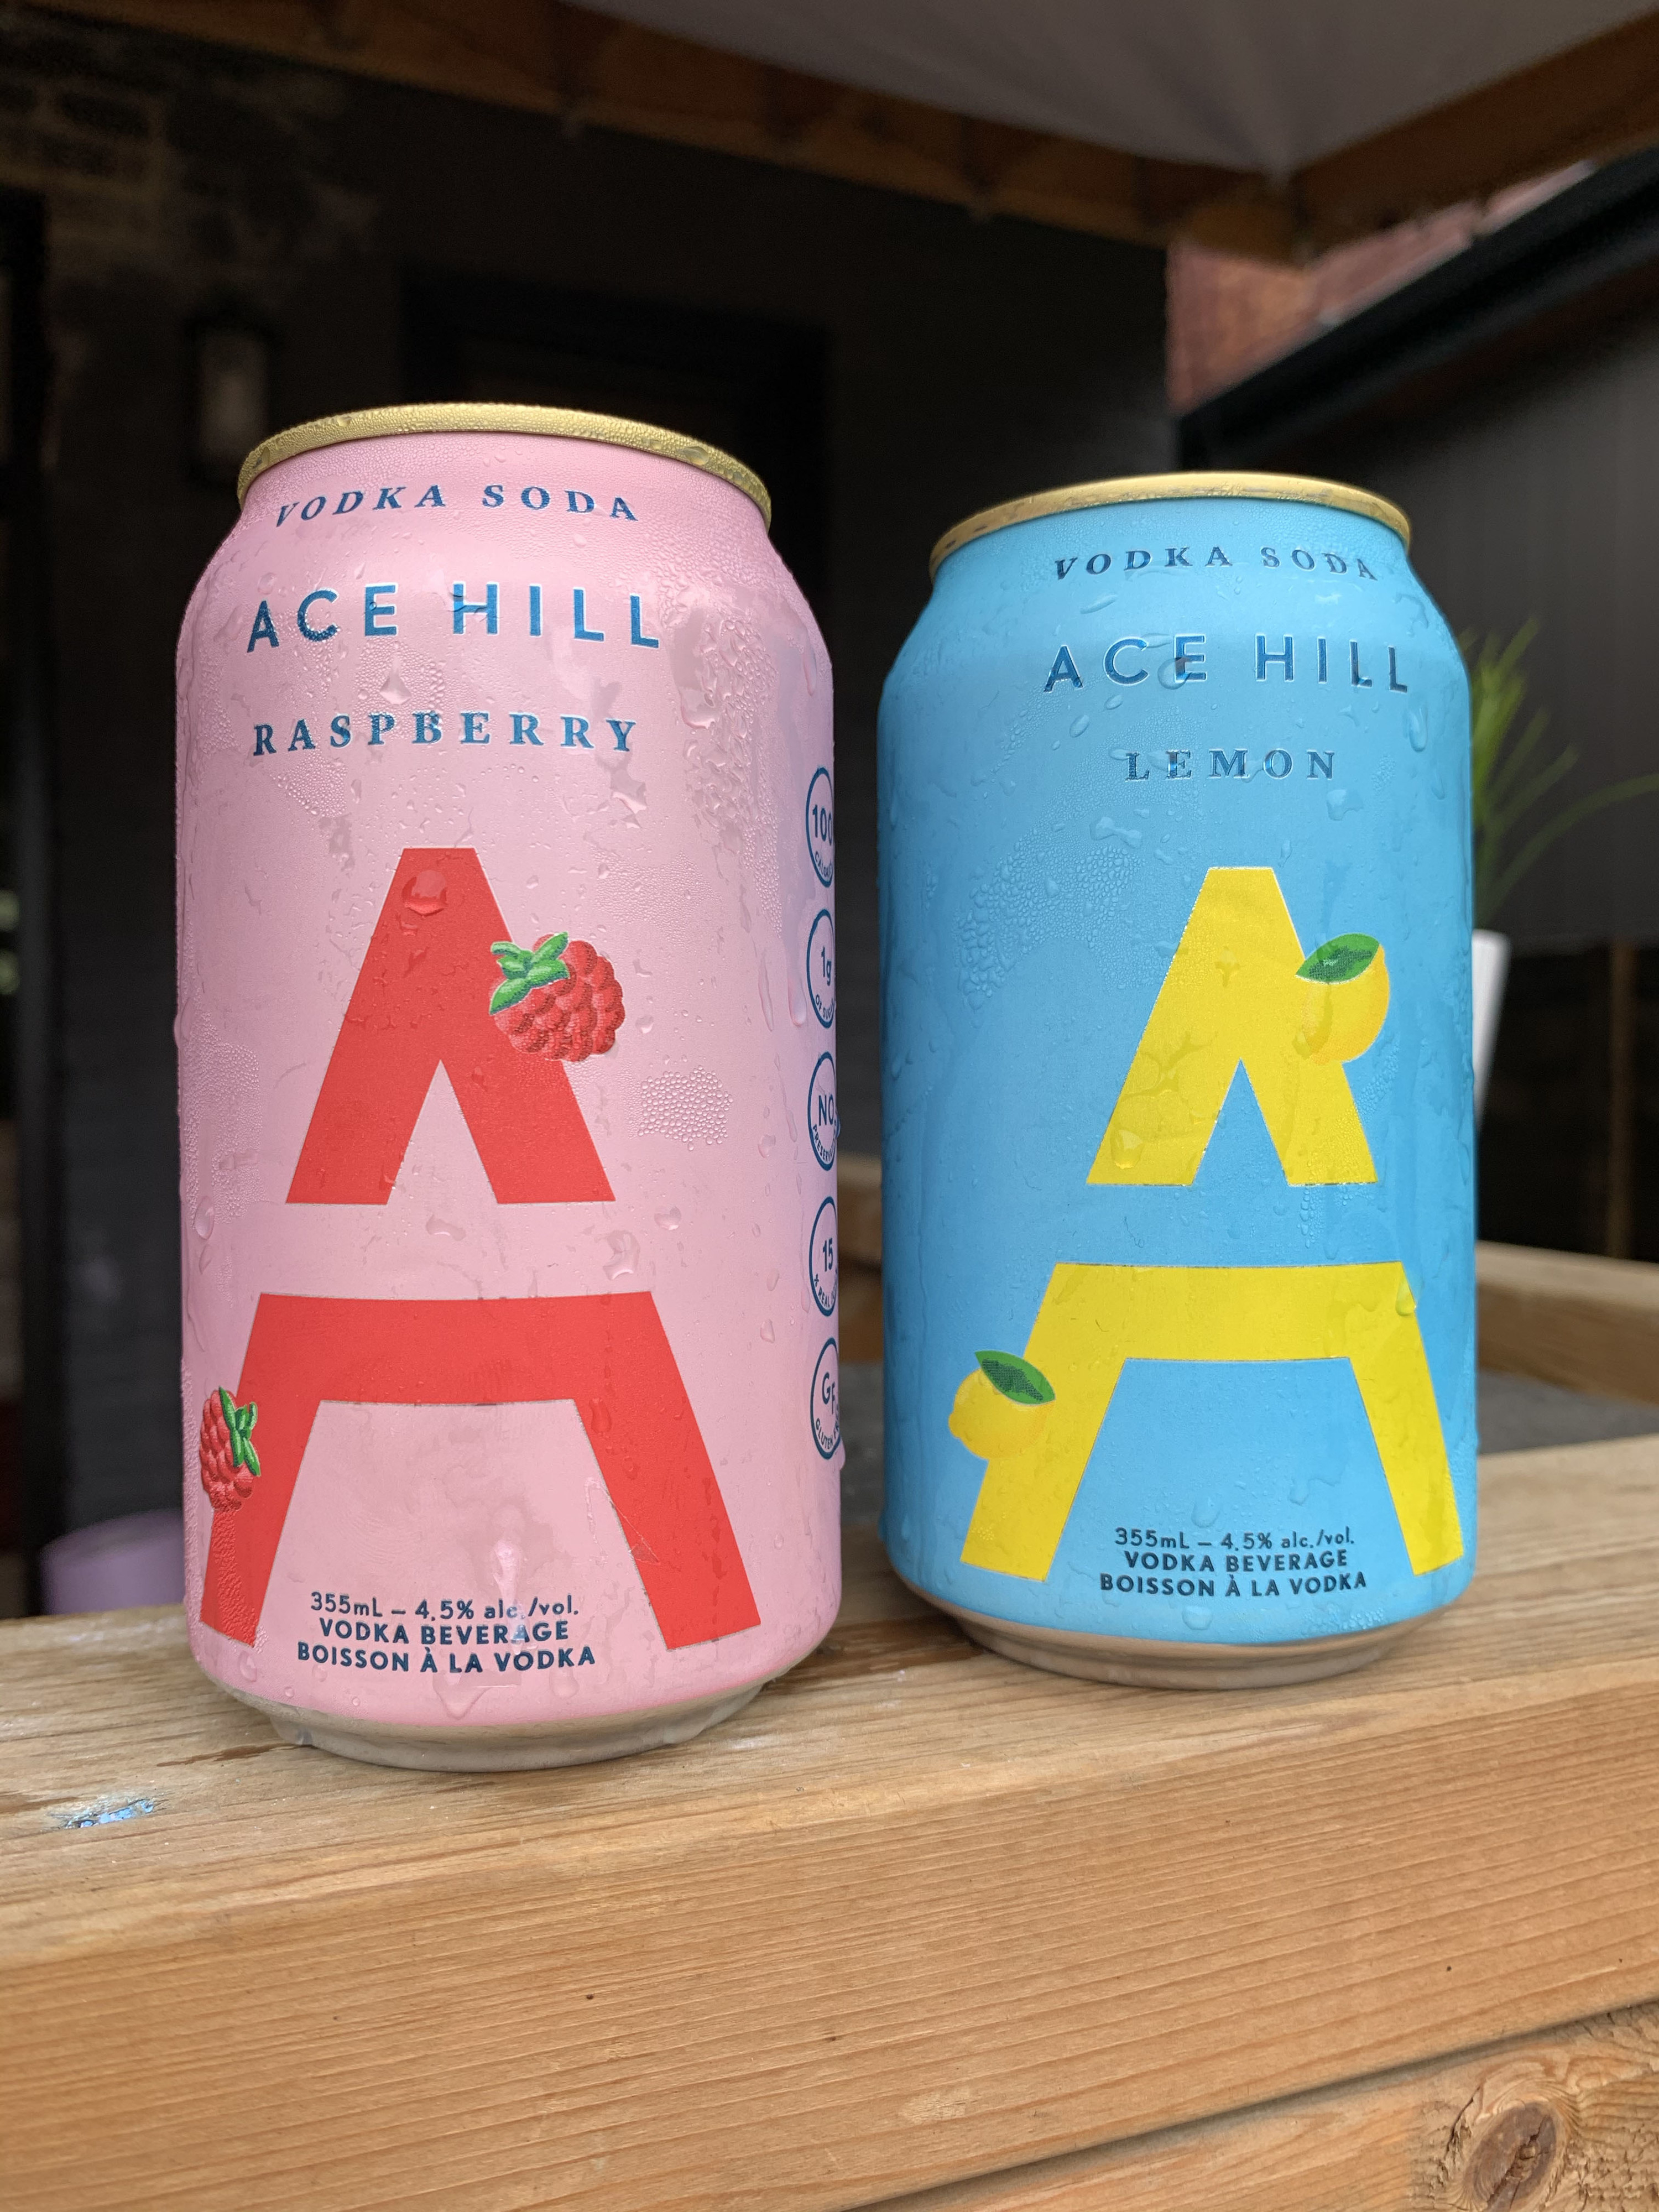 A can of Ace Hill Raspberry (pink can) and Ace Hill Lemon (blue can).